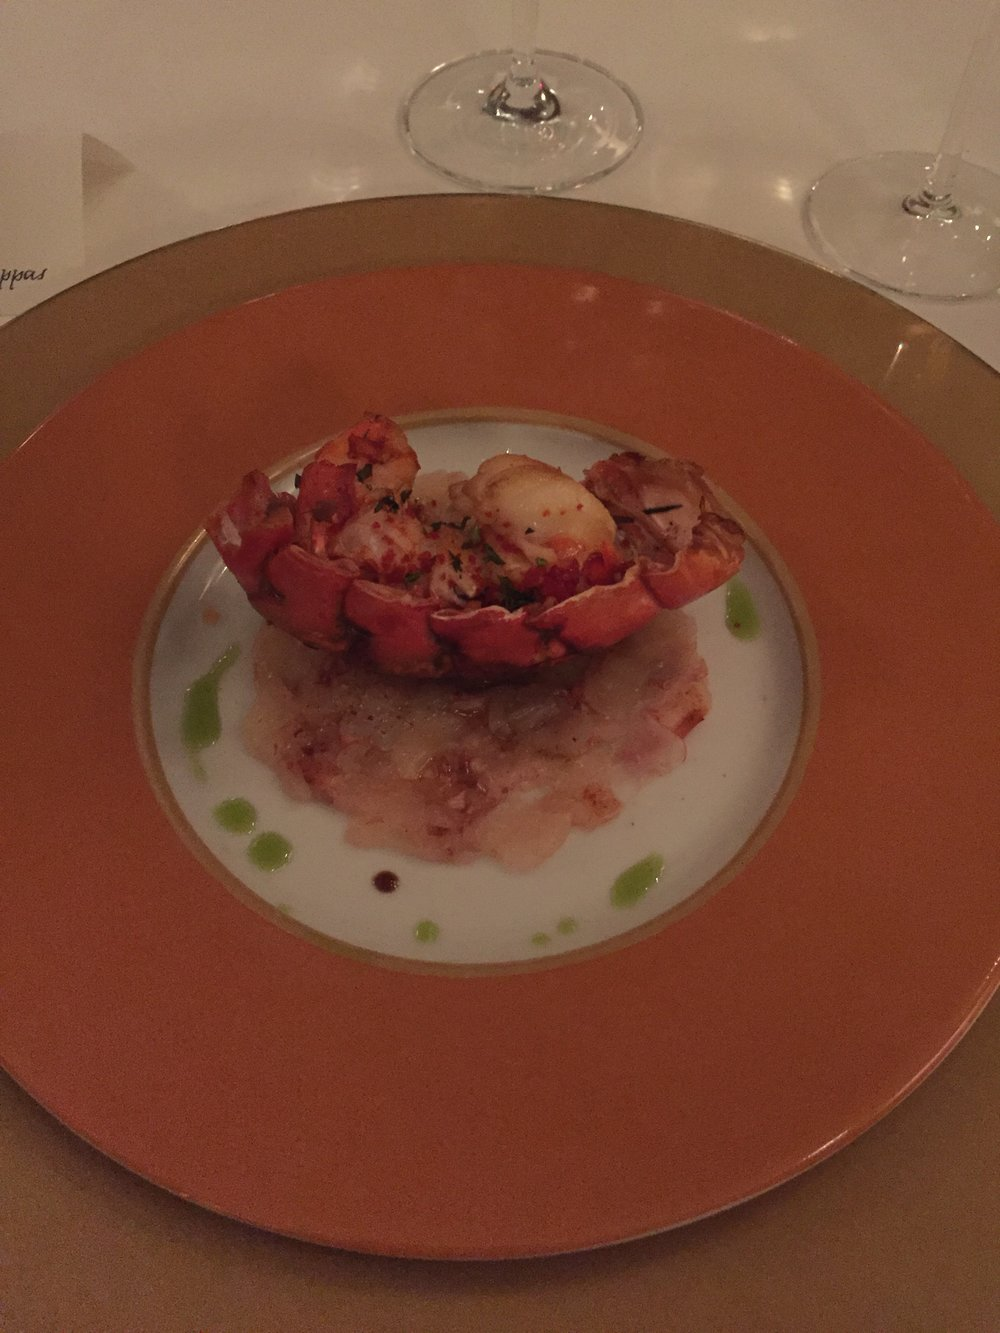 Lobster for dinner during Paris Fashion Week 2016.